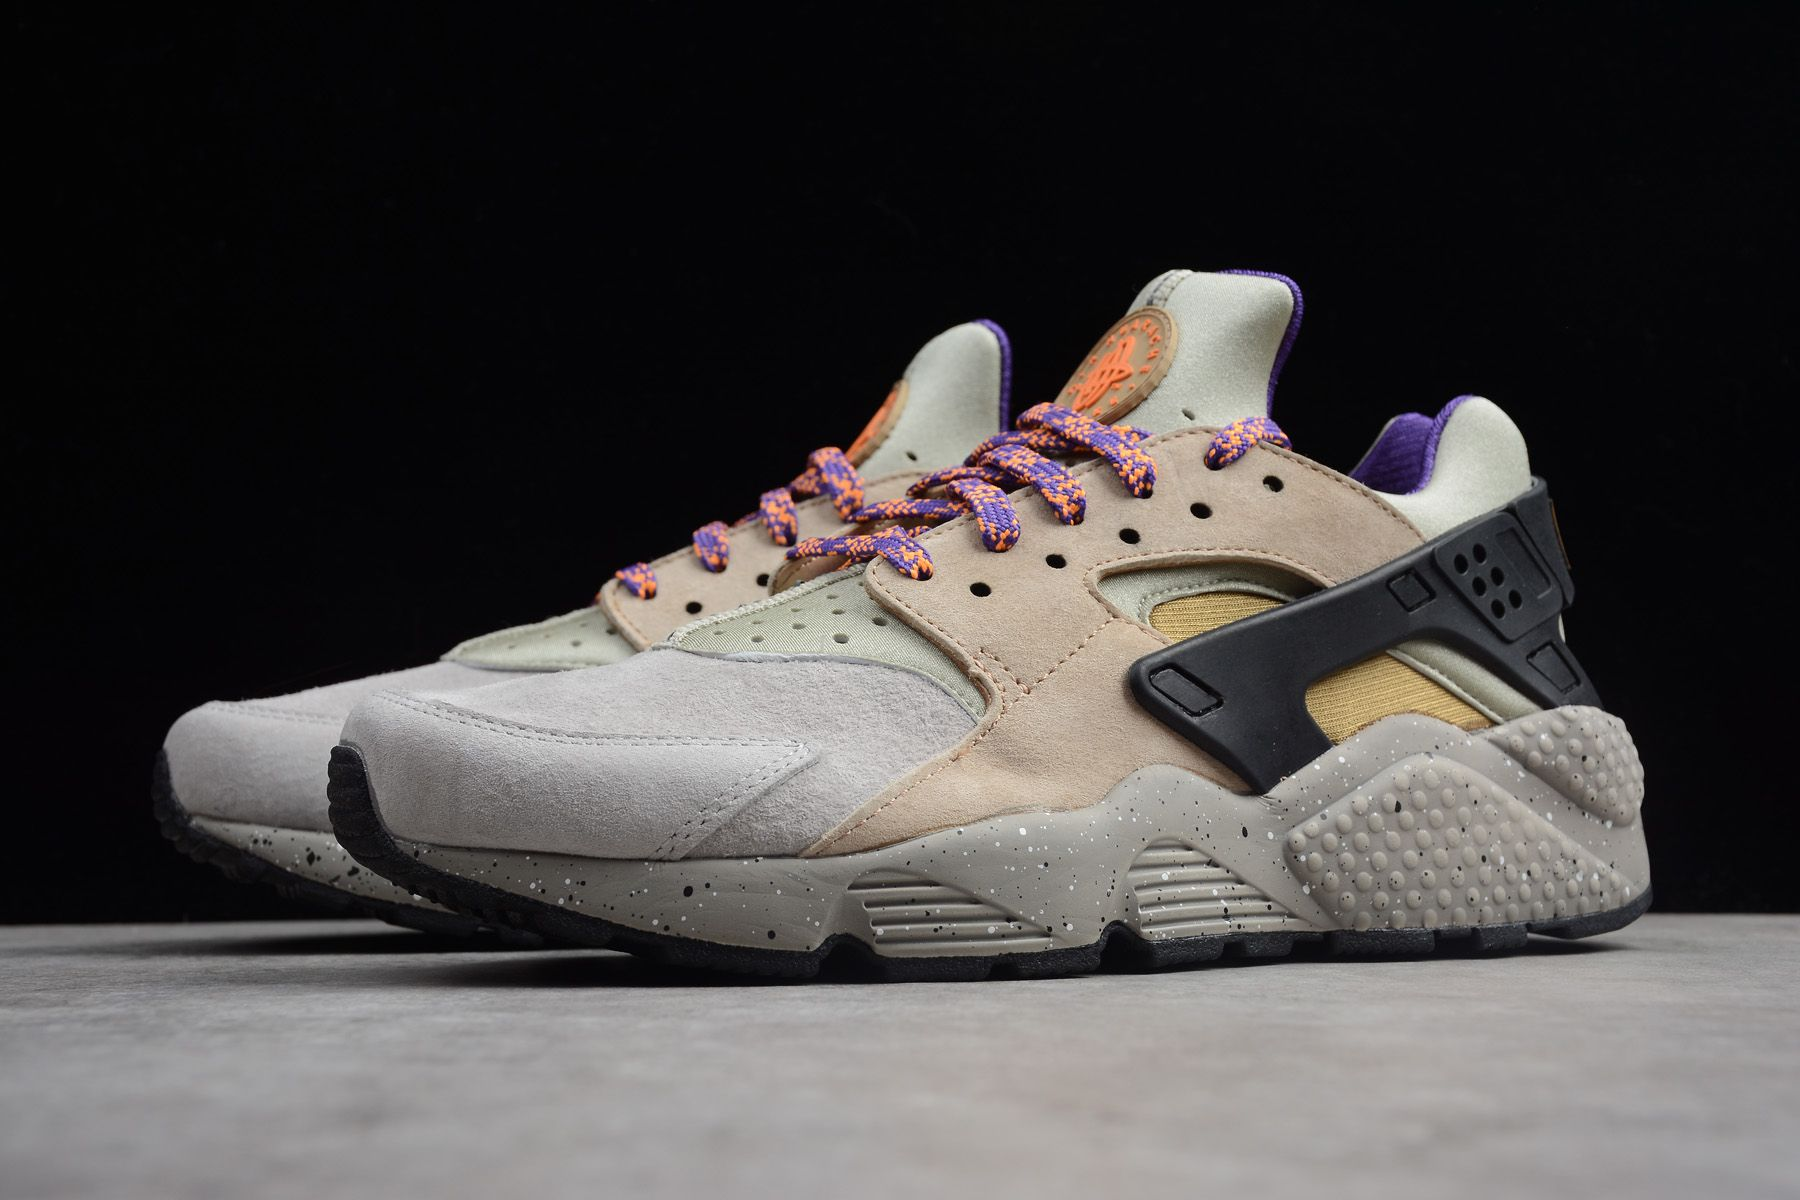 watch 8c590 10abc Nike Air Huarache Run Premium ACG Linen Golden Beige-Black-Court Purple  704830-200